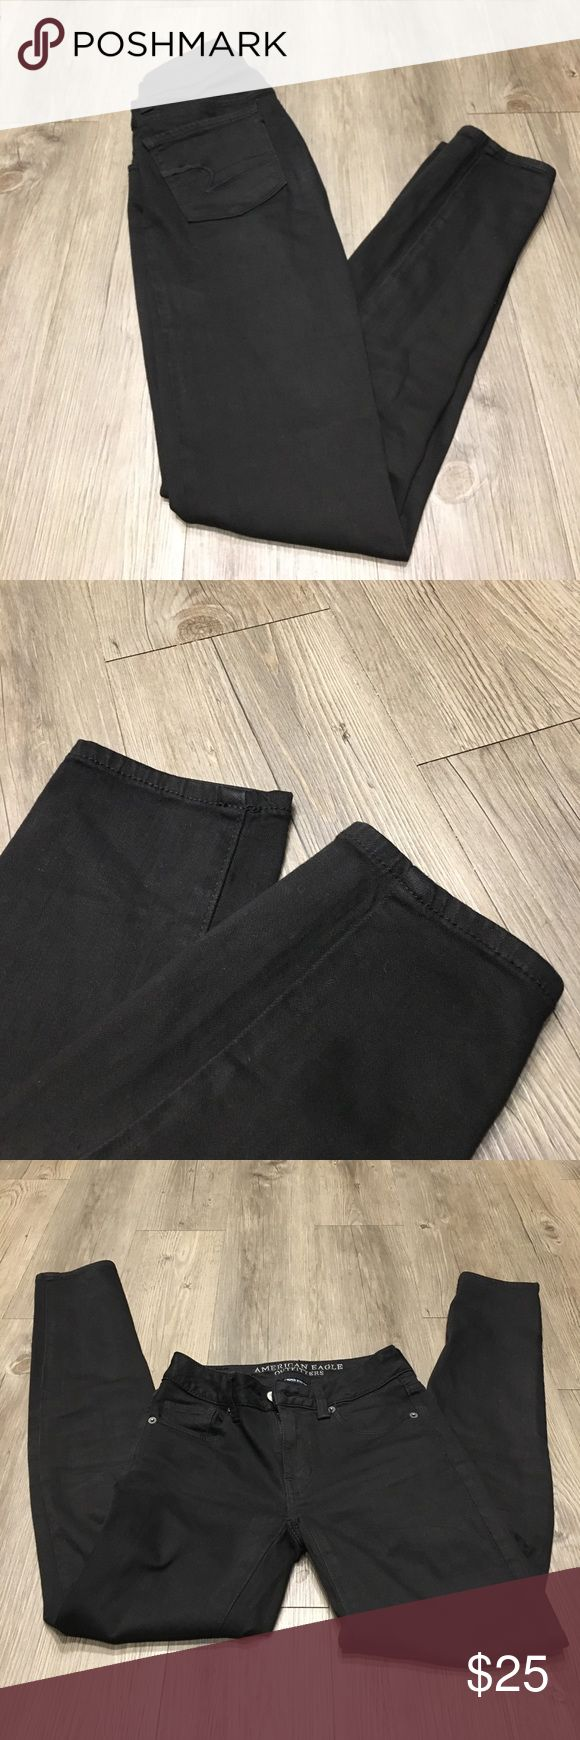 🍃 SALE 🍃 American Eagle Black Skinny Jean American Eagle black skinny jeans. Size 0. Excellent condition! American Eagle Outfitters Jeans